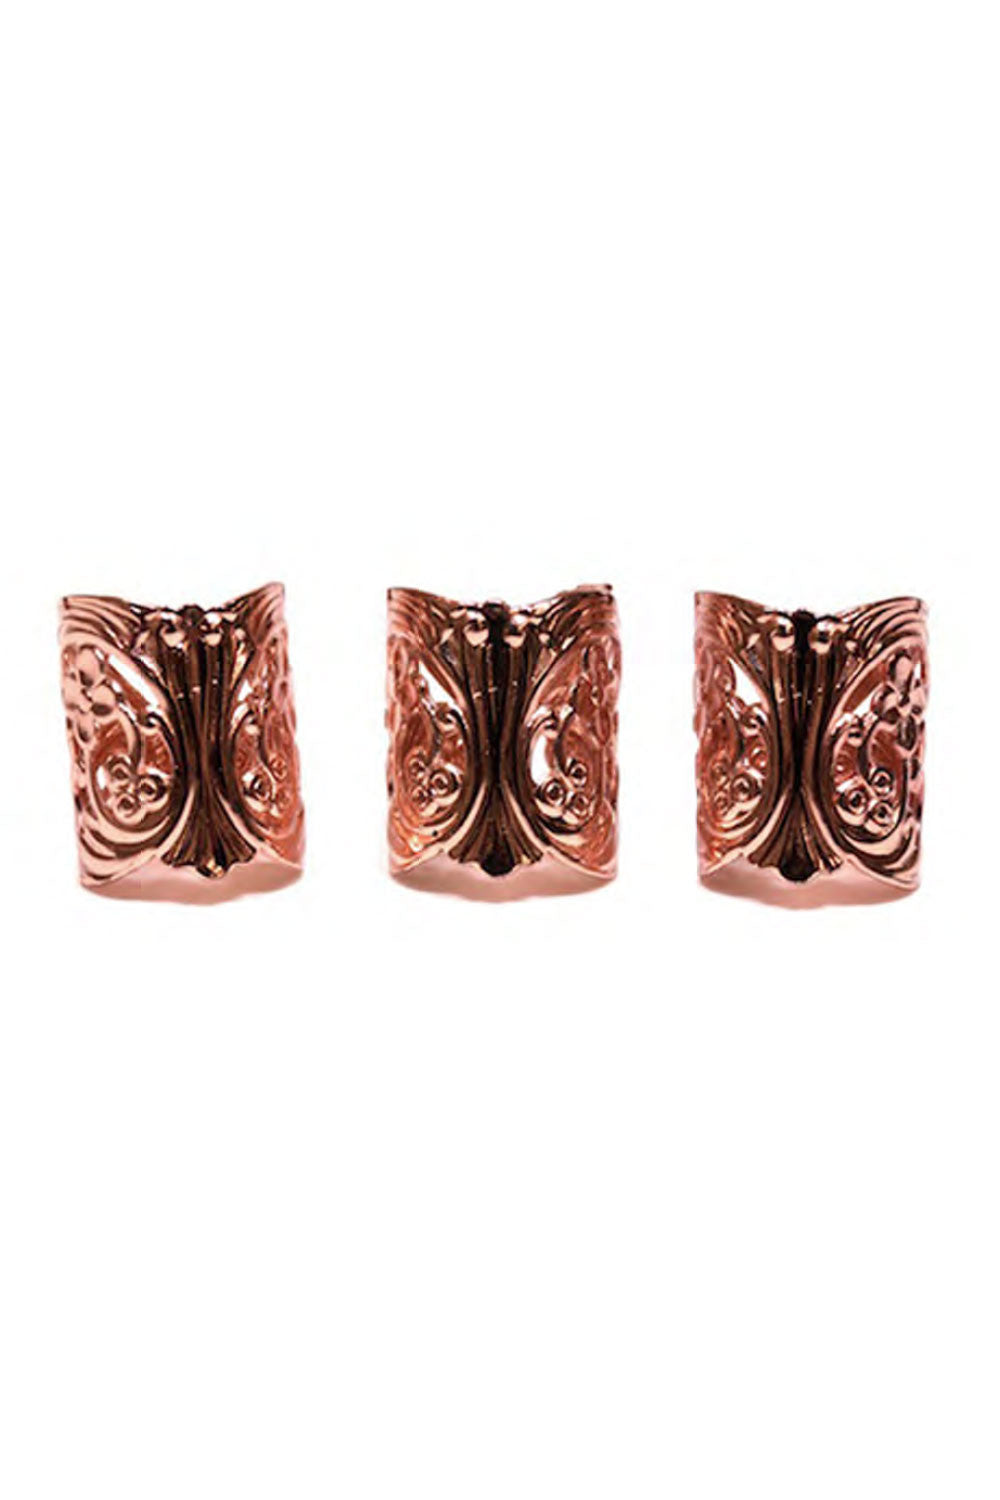 LACE CUFF RINGS IN ROSE GOLD (SET OF 3)